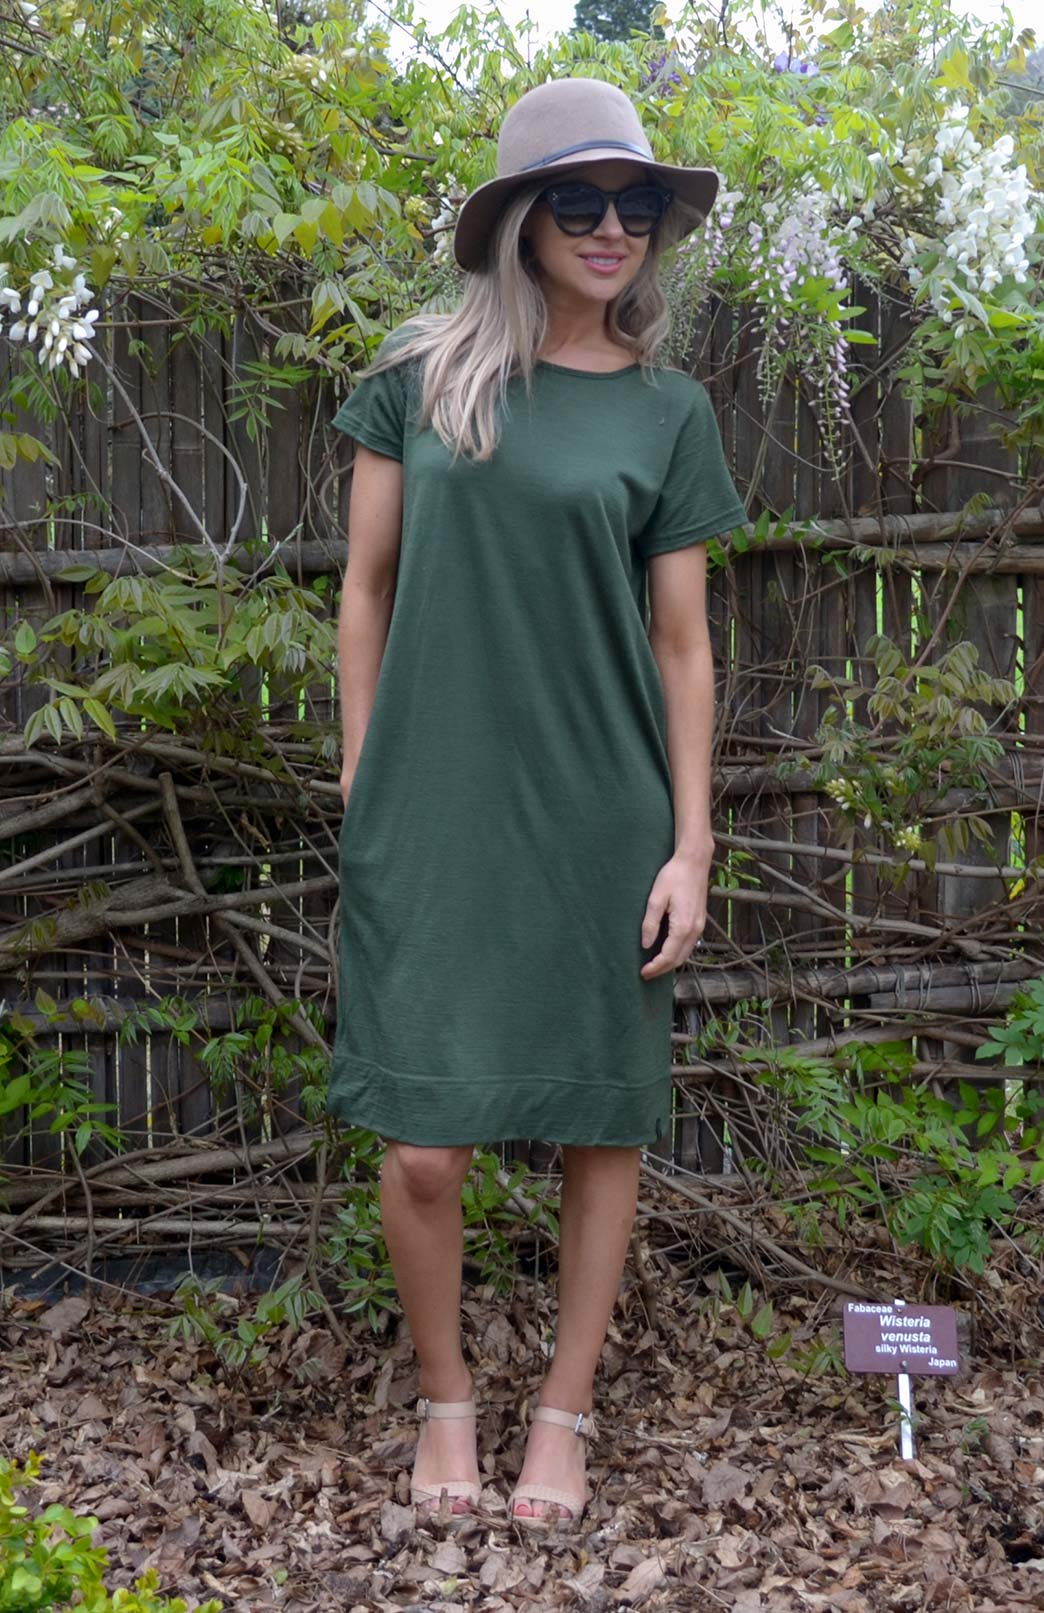 Tiffany Shift Dress - Women's Green Short Sleeved Merino Wool Shift Dress - Smitten Merino Tasmania Australia